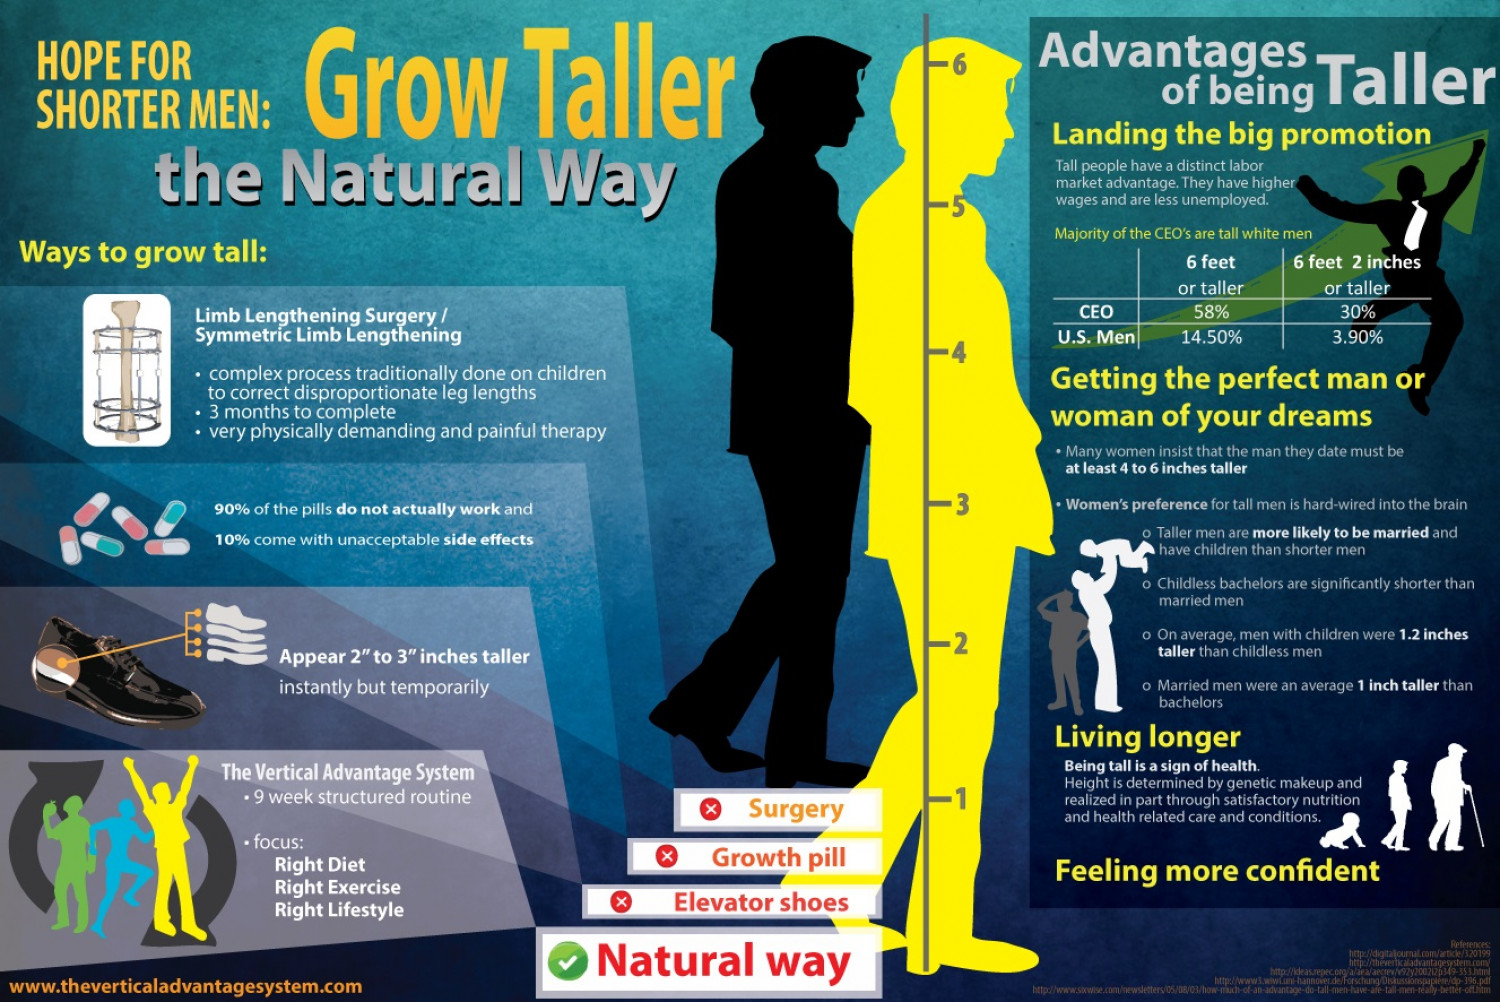 Hope for Shorter Men: Grow Taller the Natural Way Infographic